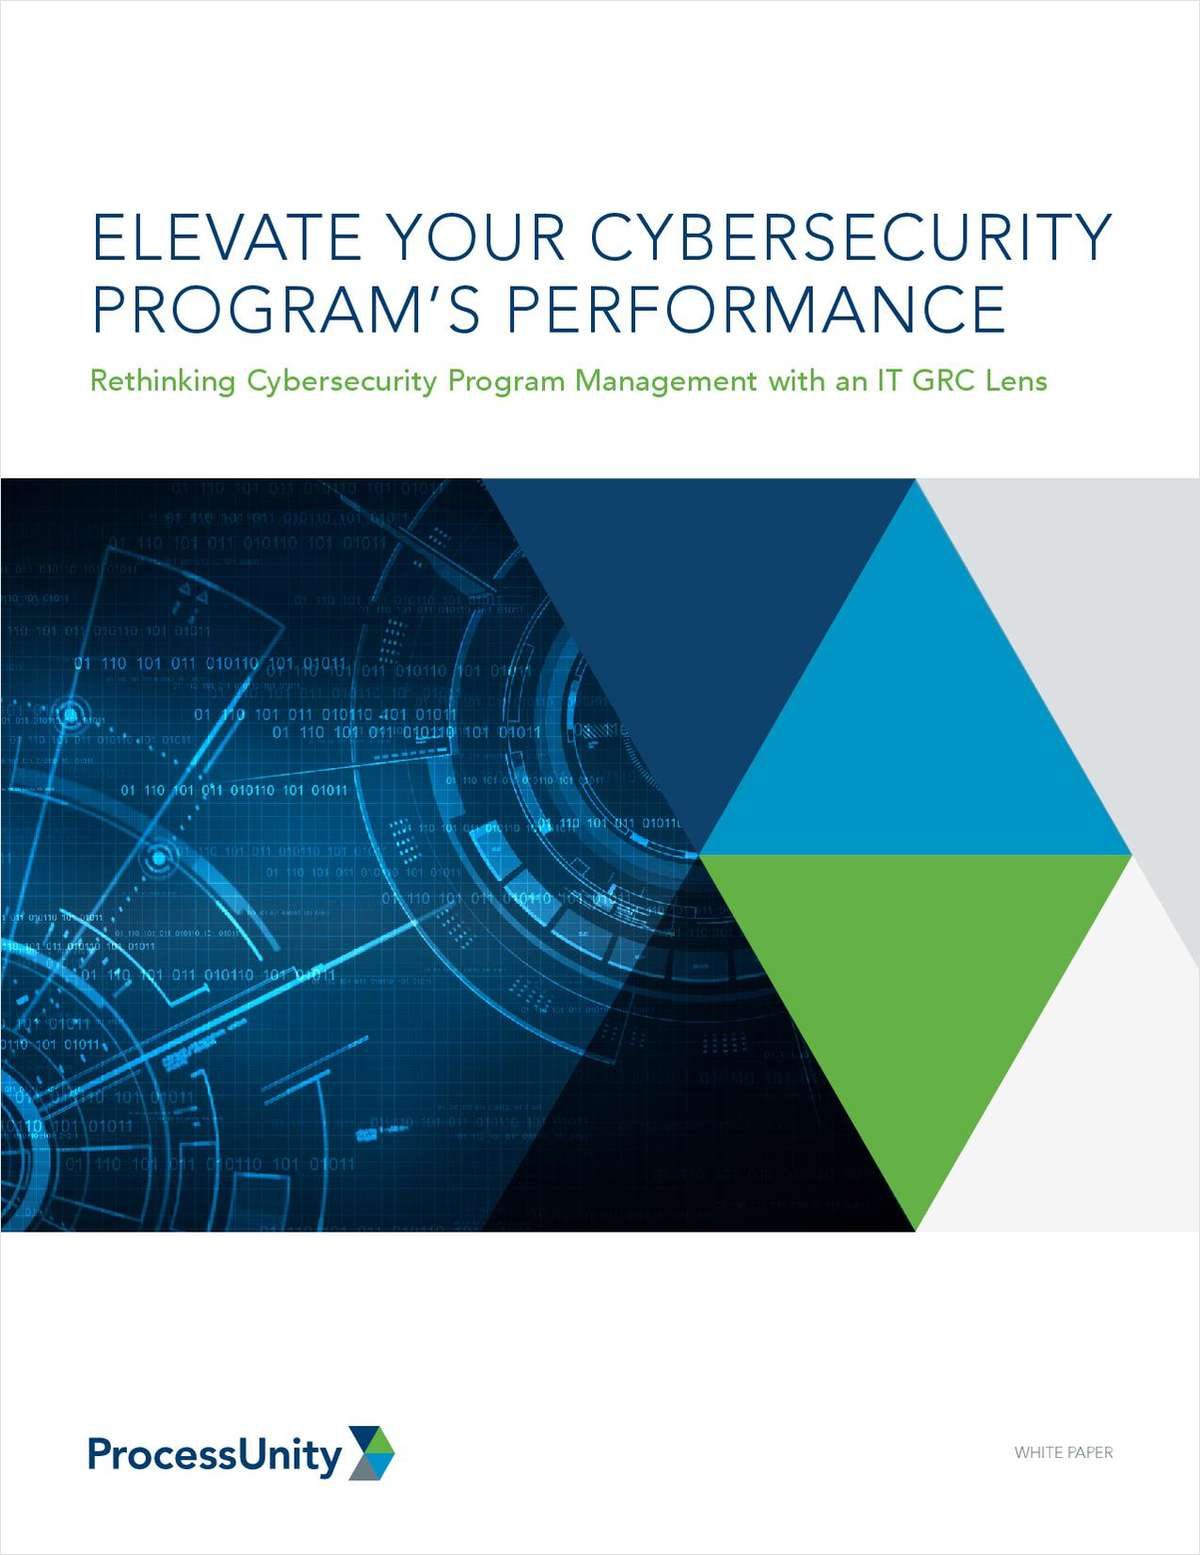 Elevate Your Cybersecurity Program's Performance